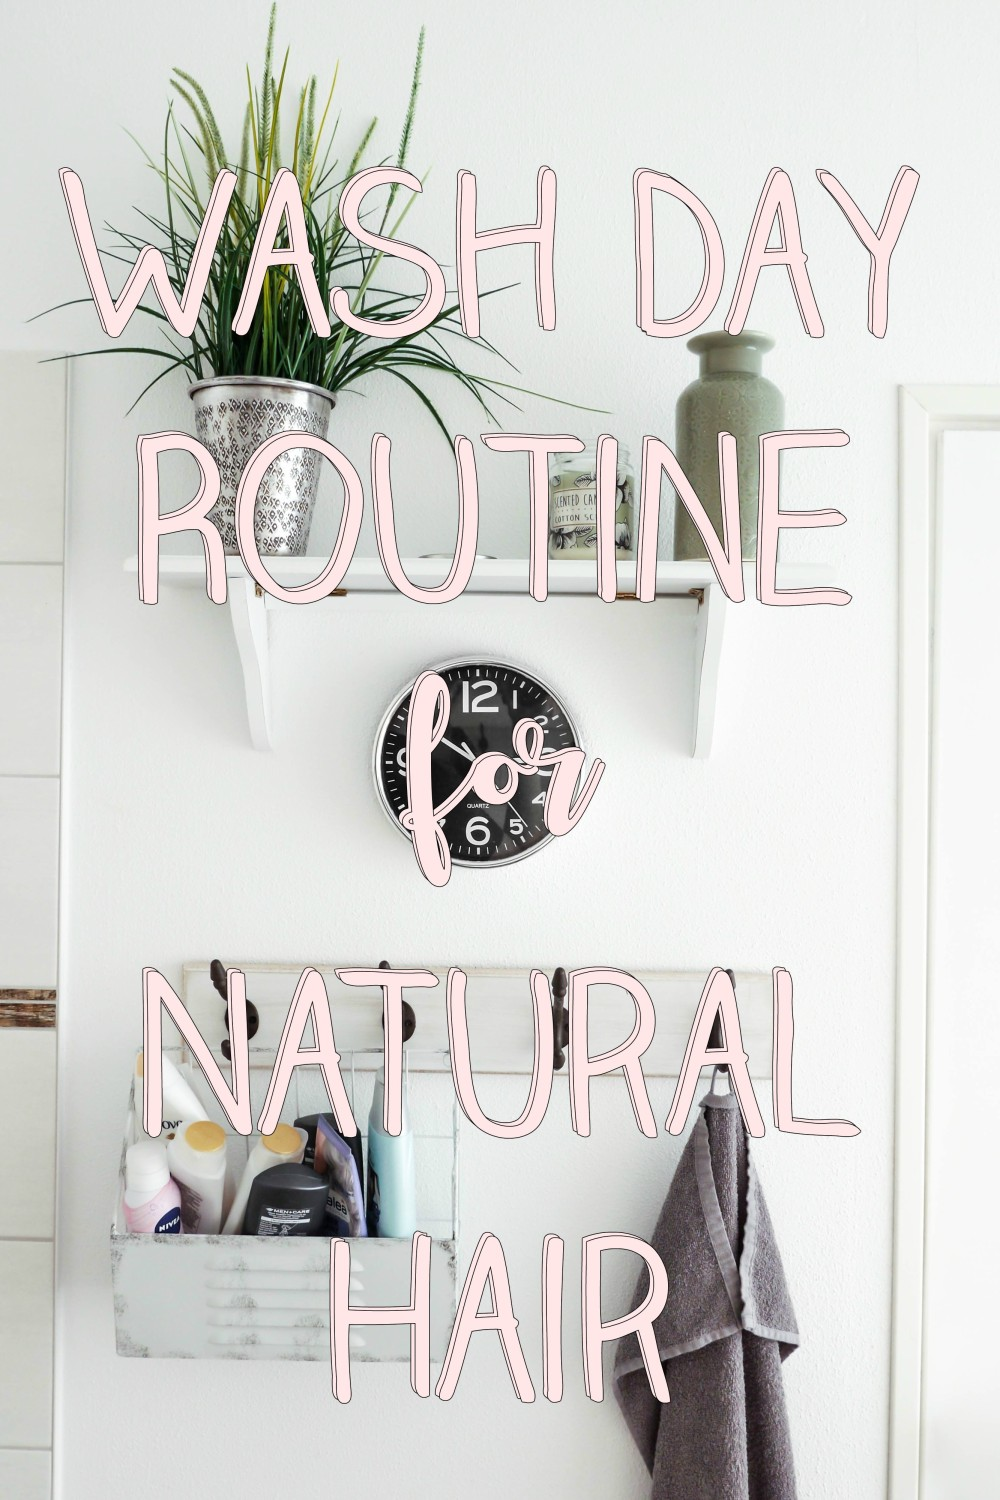 washday routine